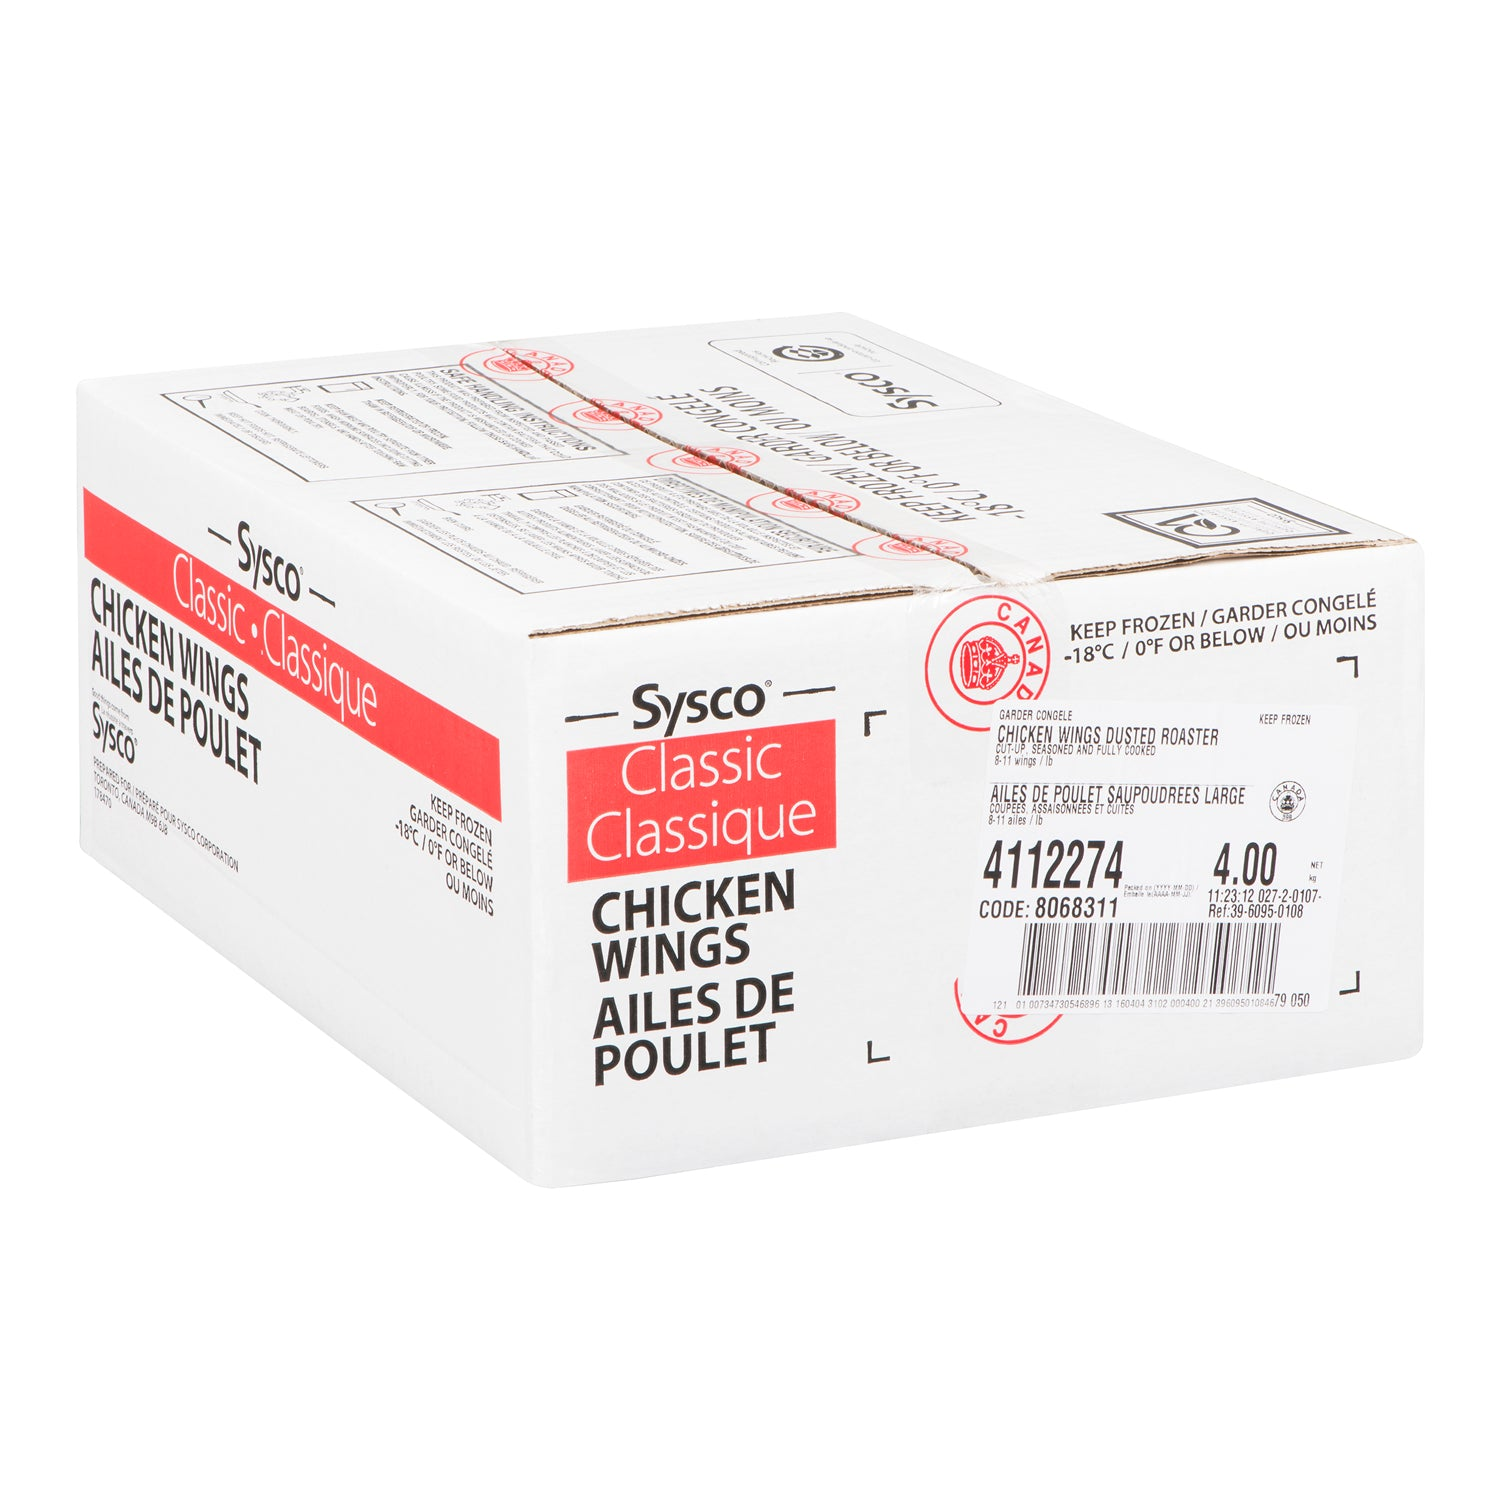 Sysco Classic Frozen Fully Cooked Breaded Chicken Wings (approx 70-100 pieces) 2 kg - 2 Pack [$16.00/kg]